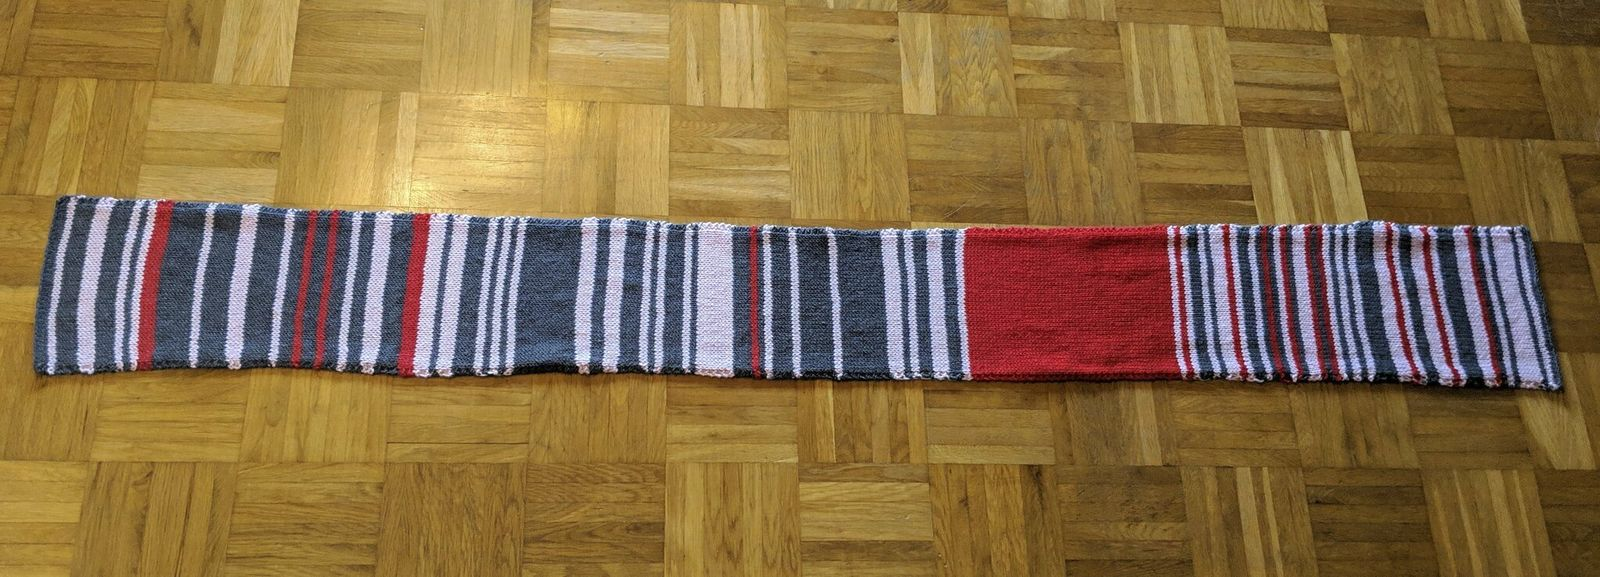 This undated photo made available Thursday Jan. 17, 2019, shows the so called 'delay scarf' which a Munich commuter has knitted with each colour reflecting the amount of time her journey with Deutsche Bahn train service had been delayed. (Sara Weber via AP)